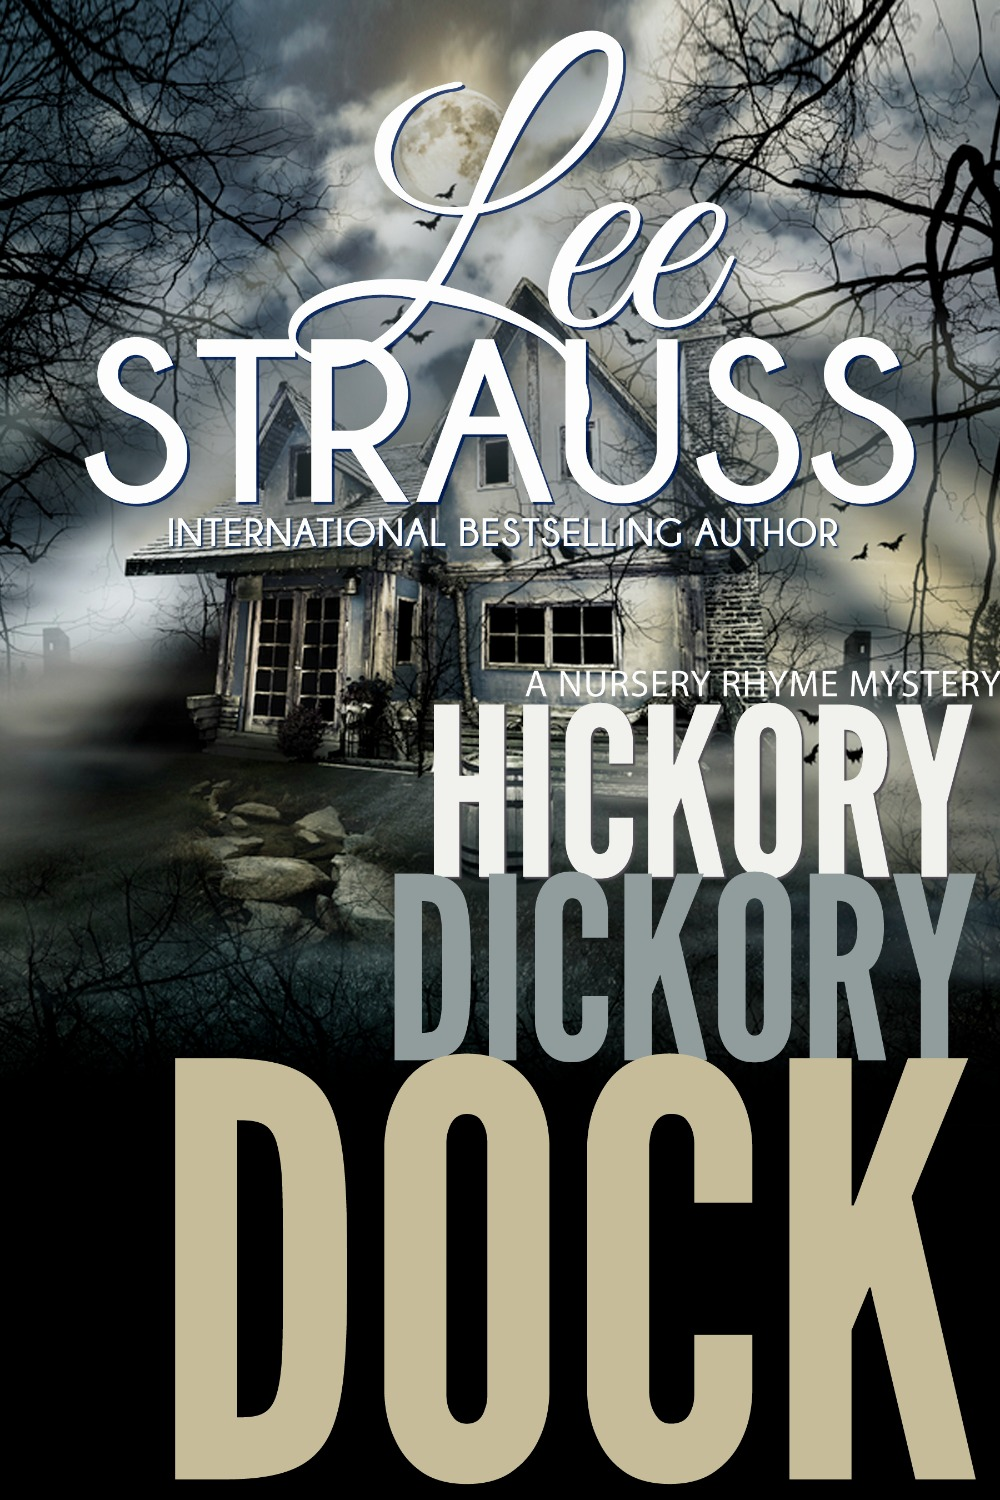 Hickory Dickory Dock: an absolutely gripping mystery with a mind bending twist